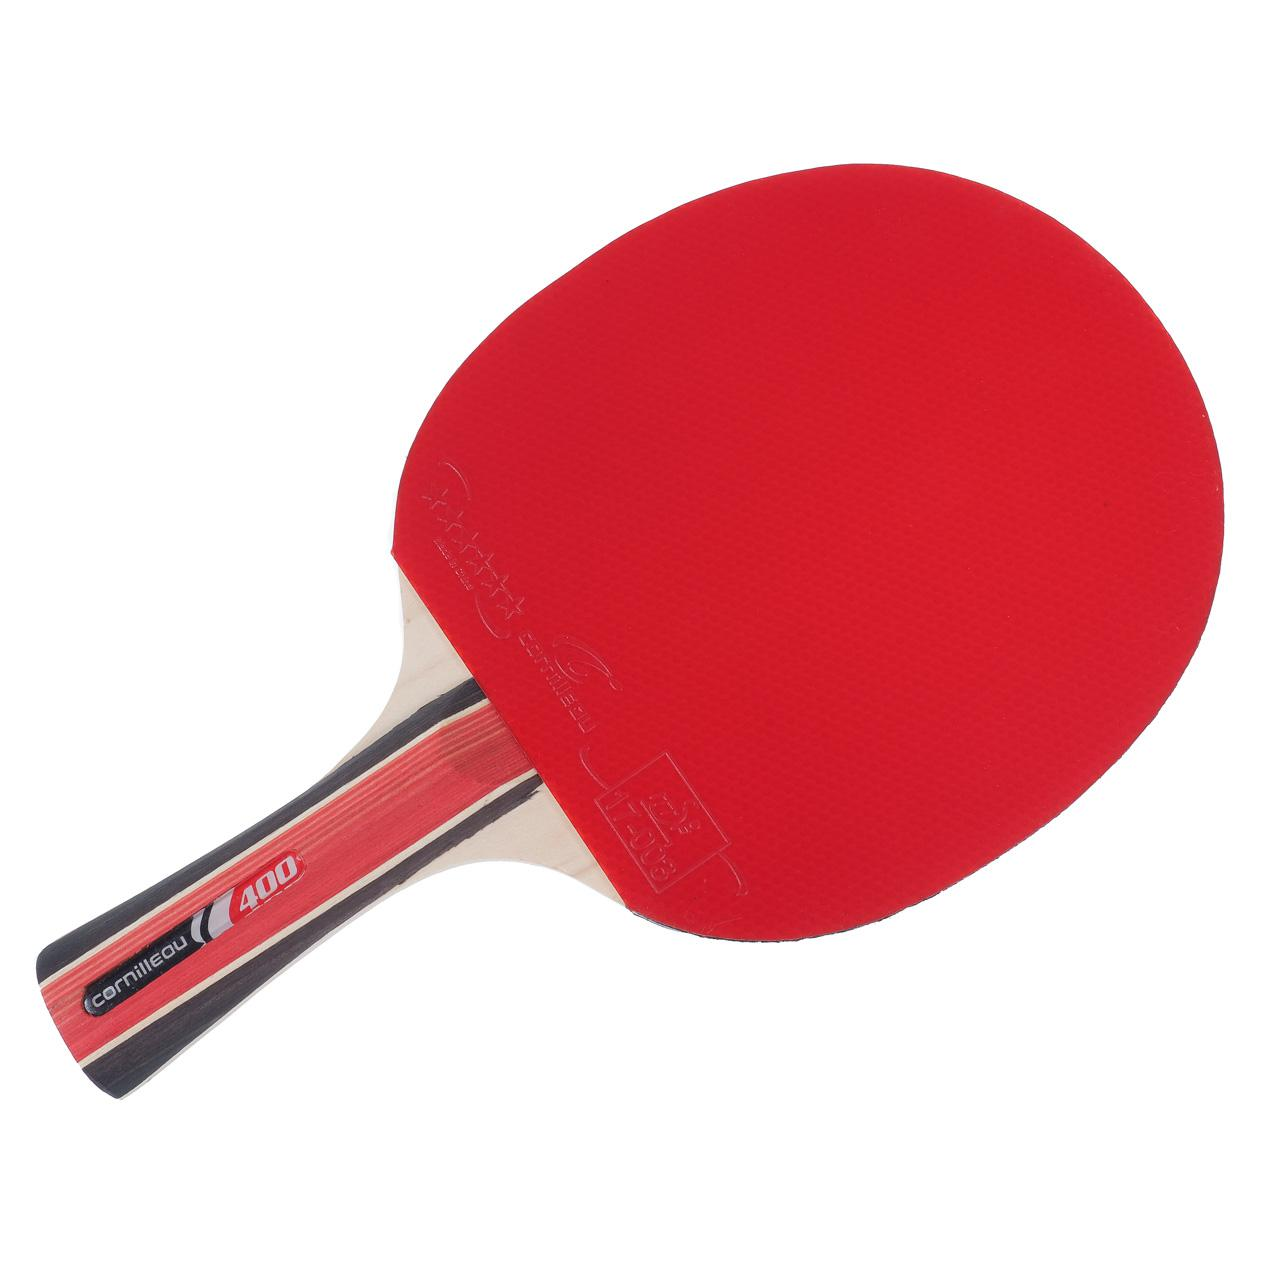 Raquette tennis de table cornilleau sport 400 rouge rouge - Raquette de tennis de table cornilleau ...